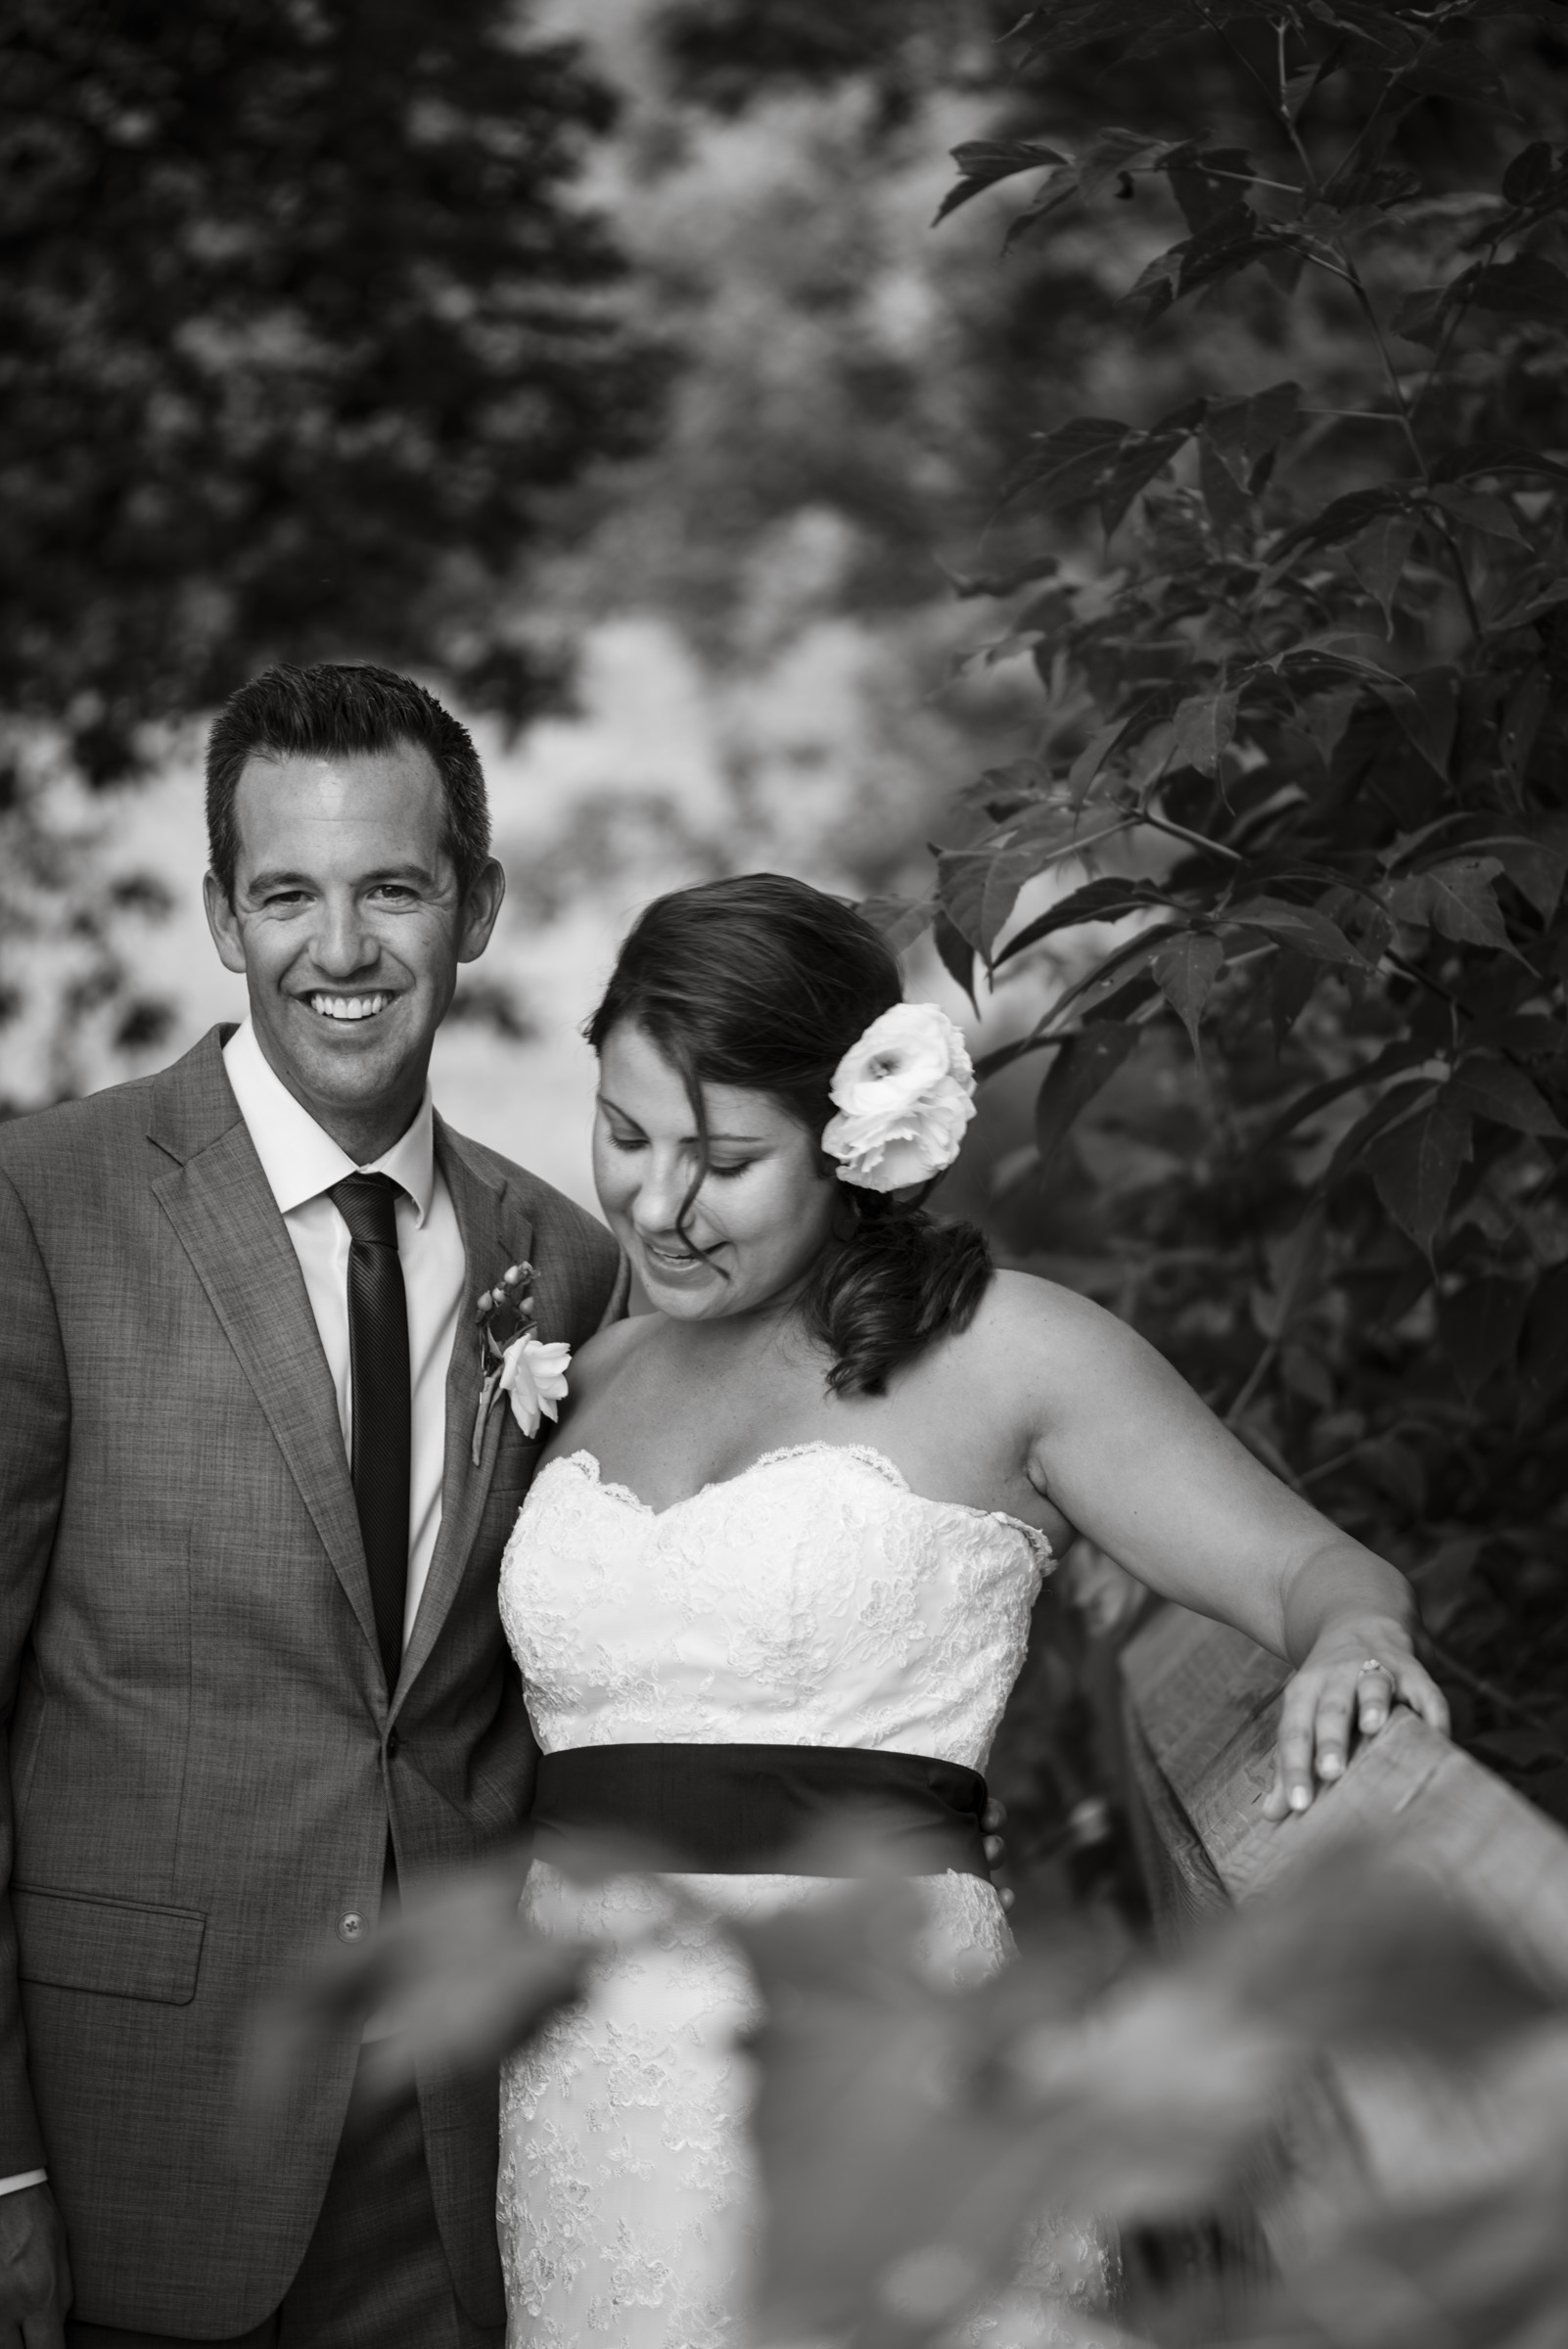 08232014-Chris&VanessaWedding-JuliaLuckettPhotography-310